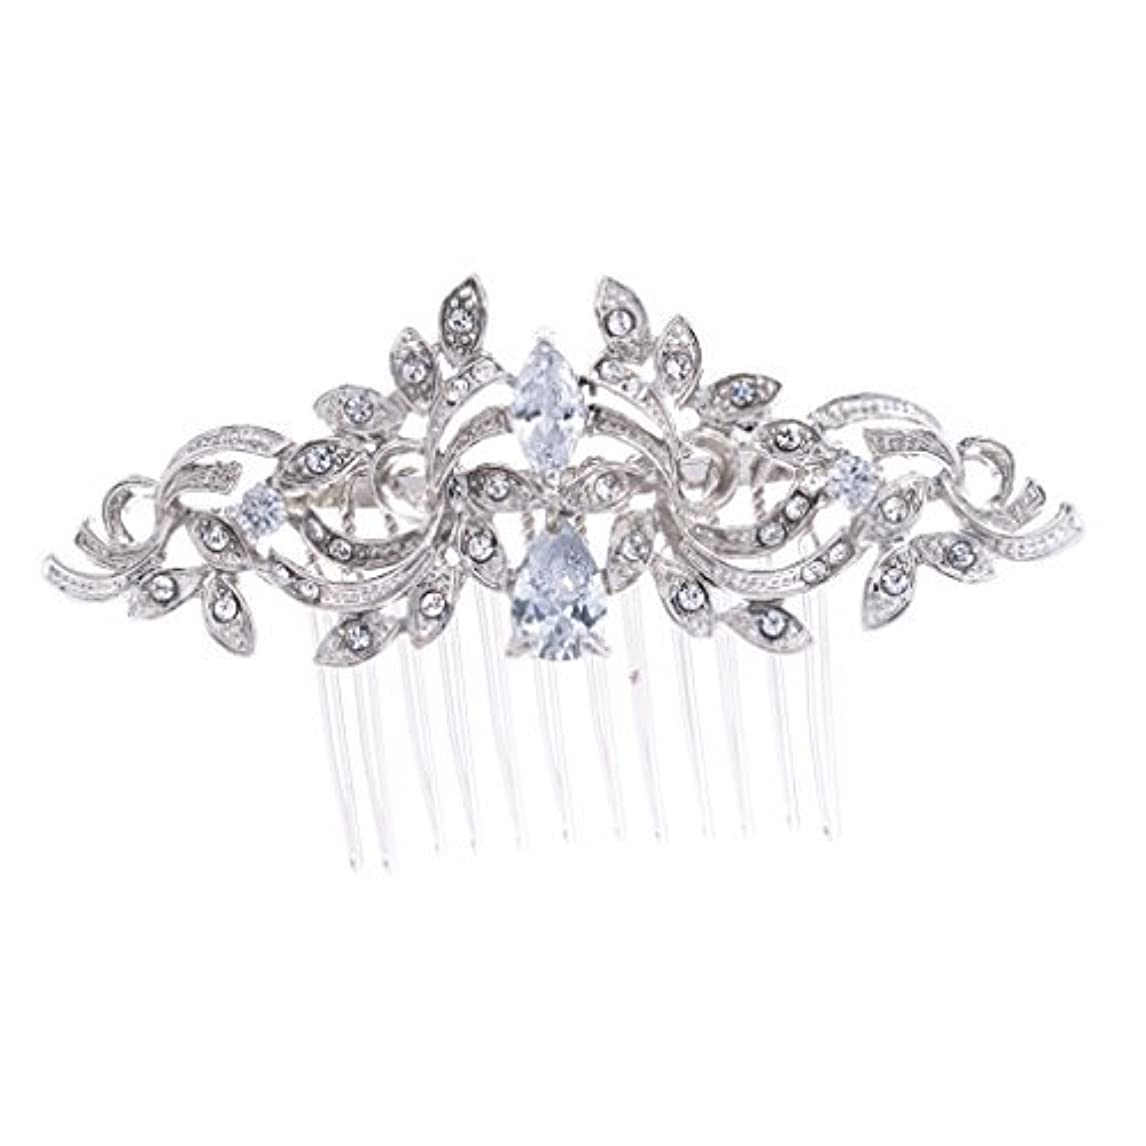 良い避難準備SEPBRIDALS Crystal Rhinestone Leaves Hair Comb Hair Pins Bridal Wedding Hair Accessories Jewelry 4012R [並行輸入品]